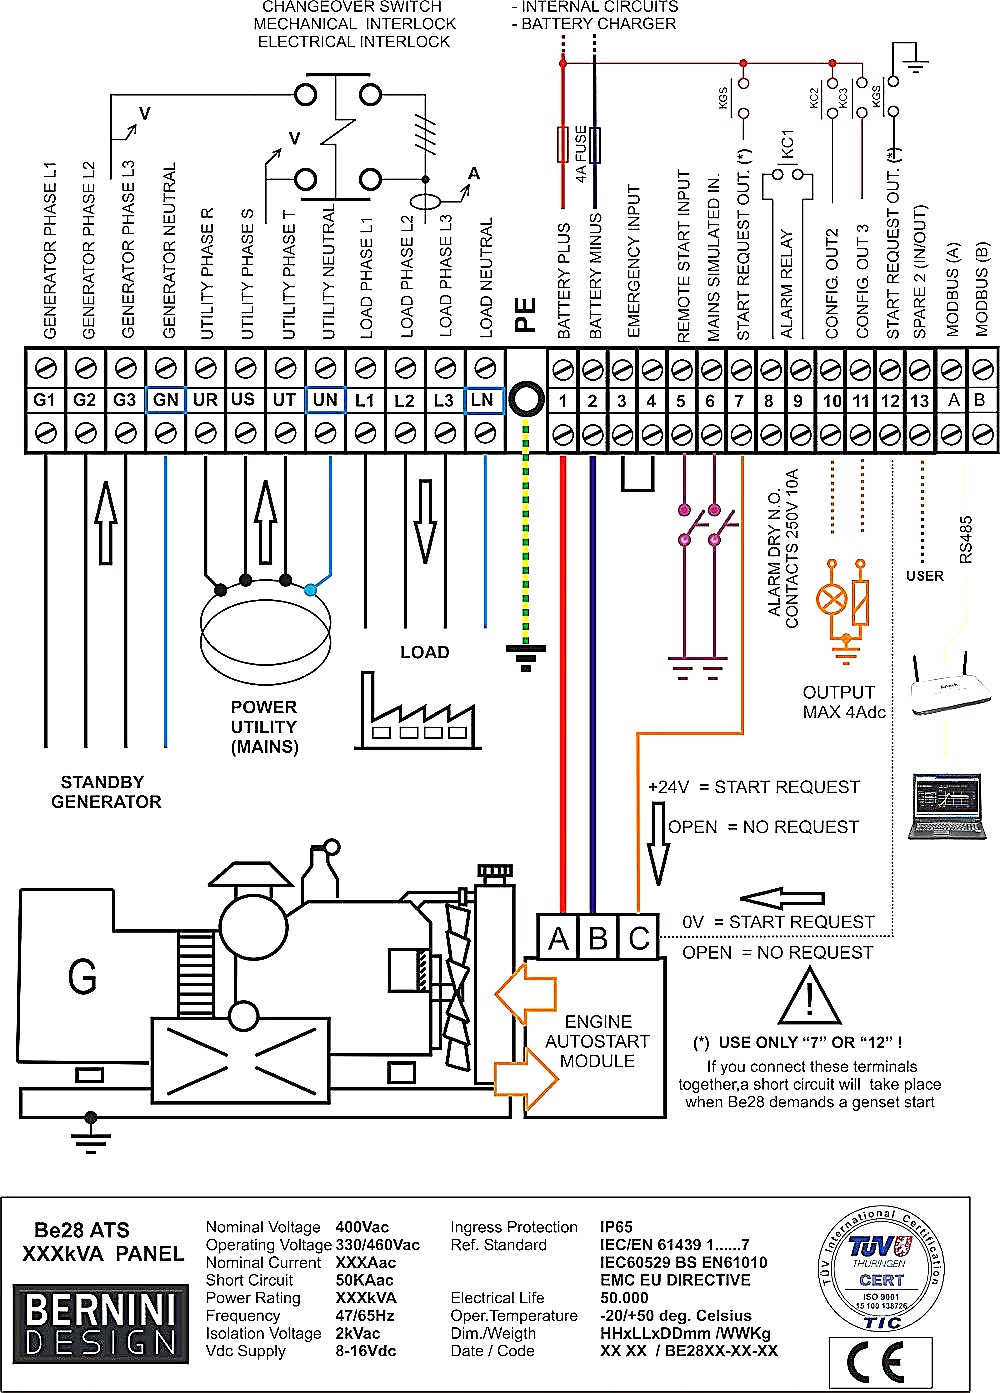 Get Generac Battery Charger Wiring Diagram Download